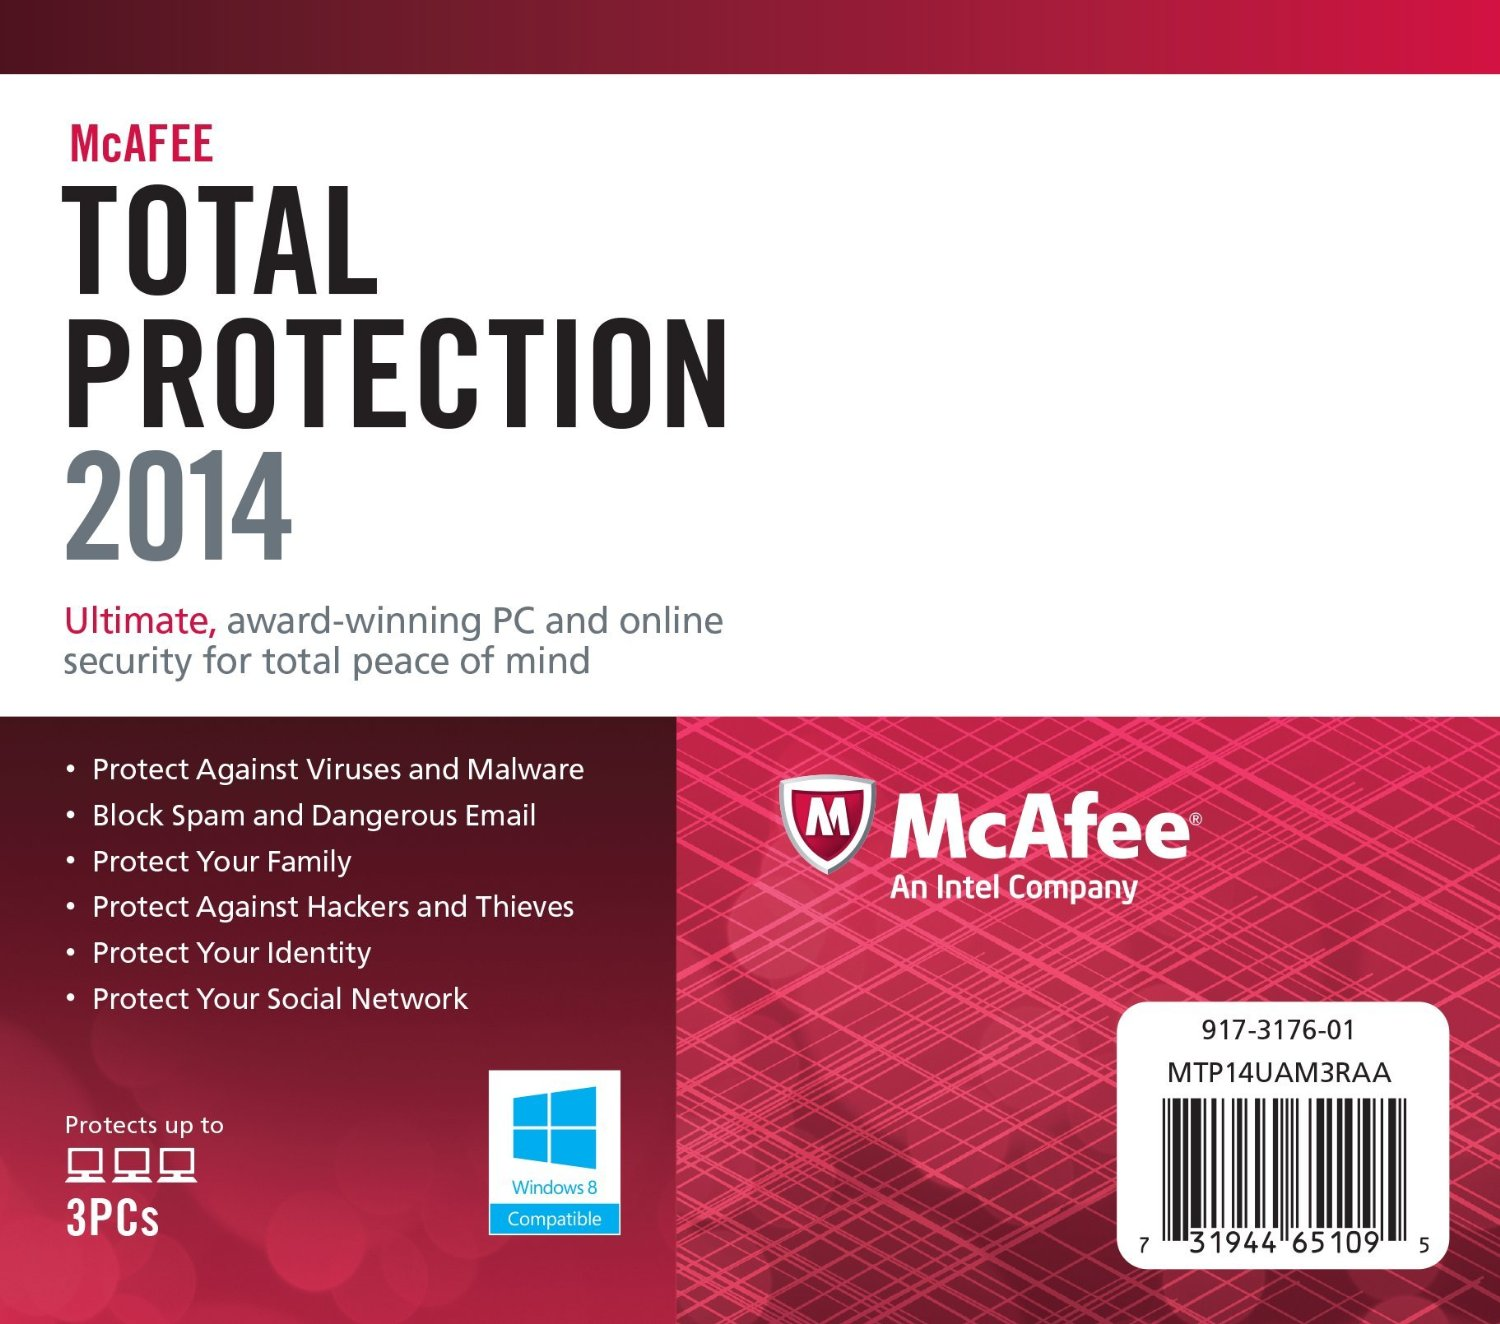 McAfee Total Protection 2014 Serial Key, Crack Full Free Download